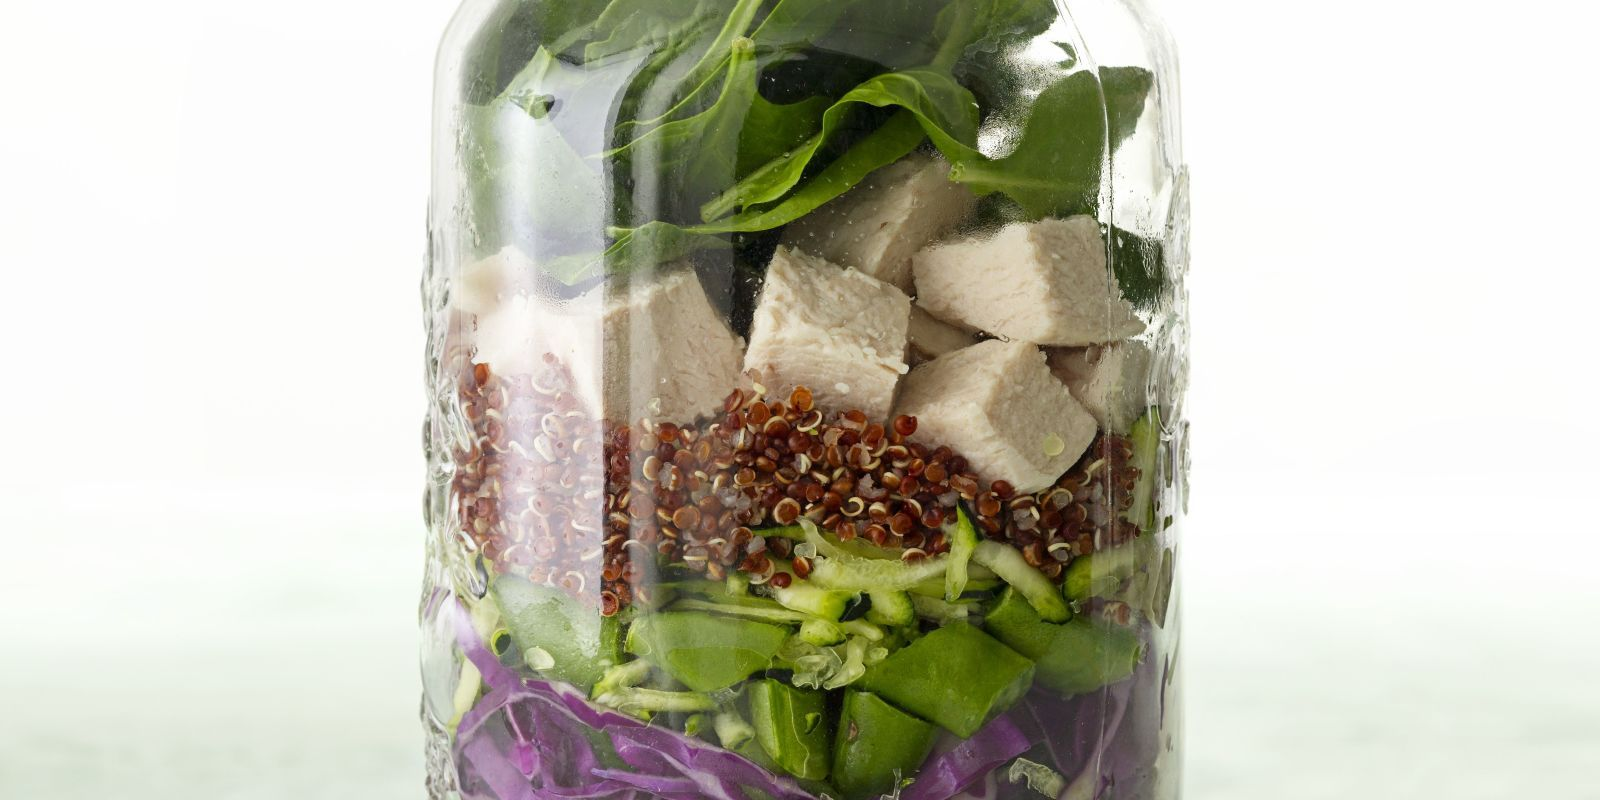 Grab it to go! The mason jar salad is a moveable feast.